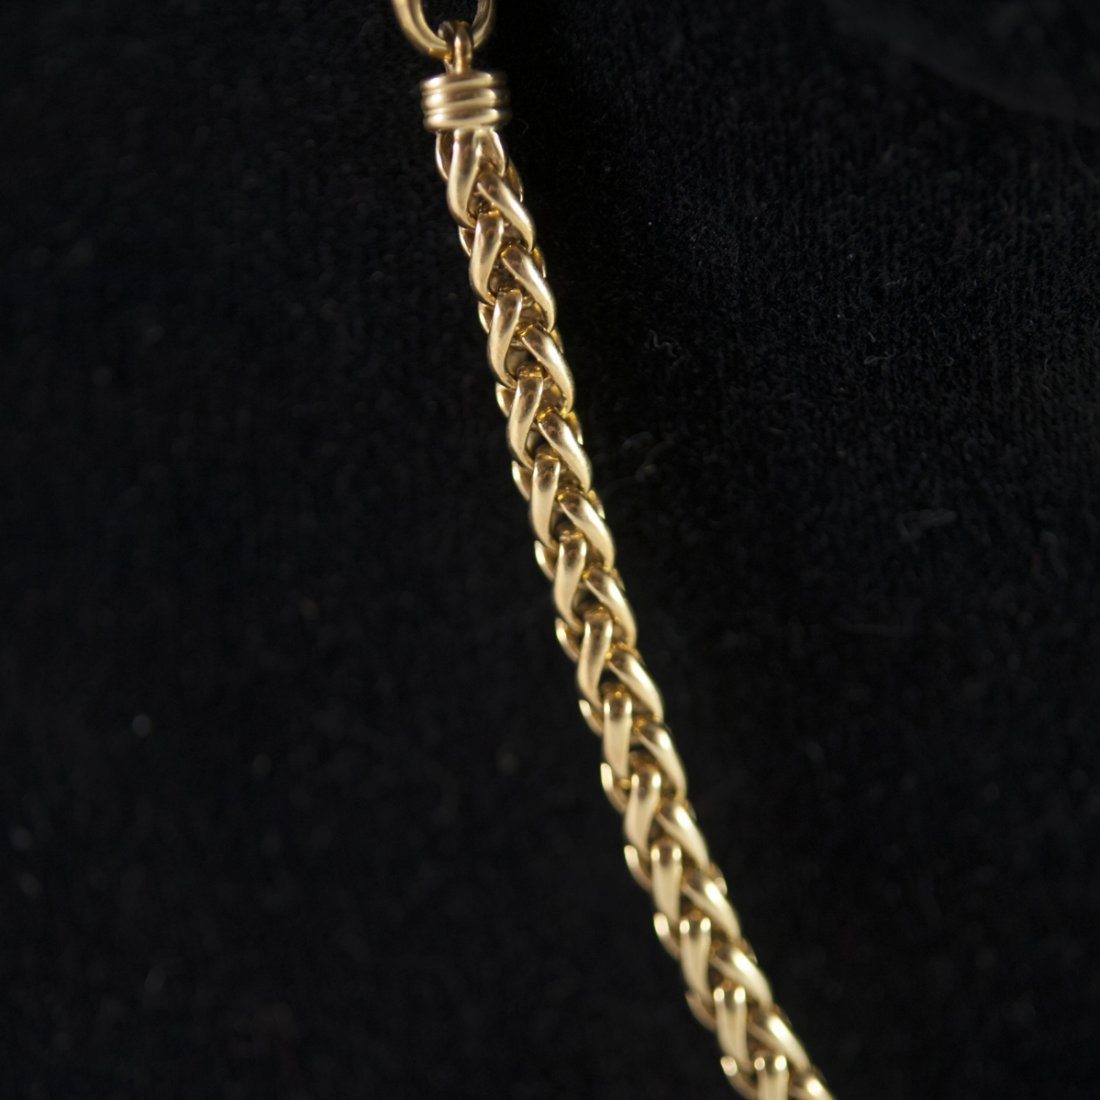 18kt Yellow Gold Bvlgari Necklace - 5